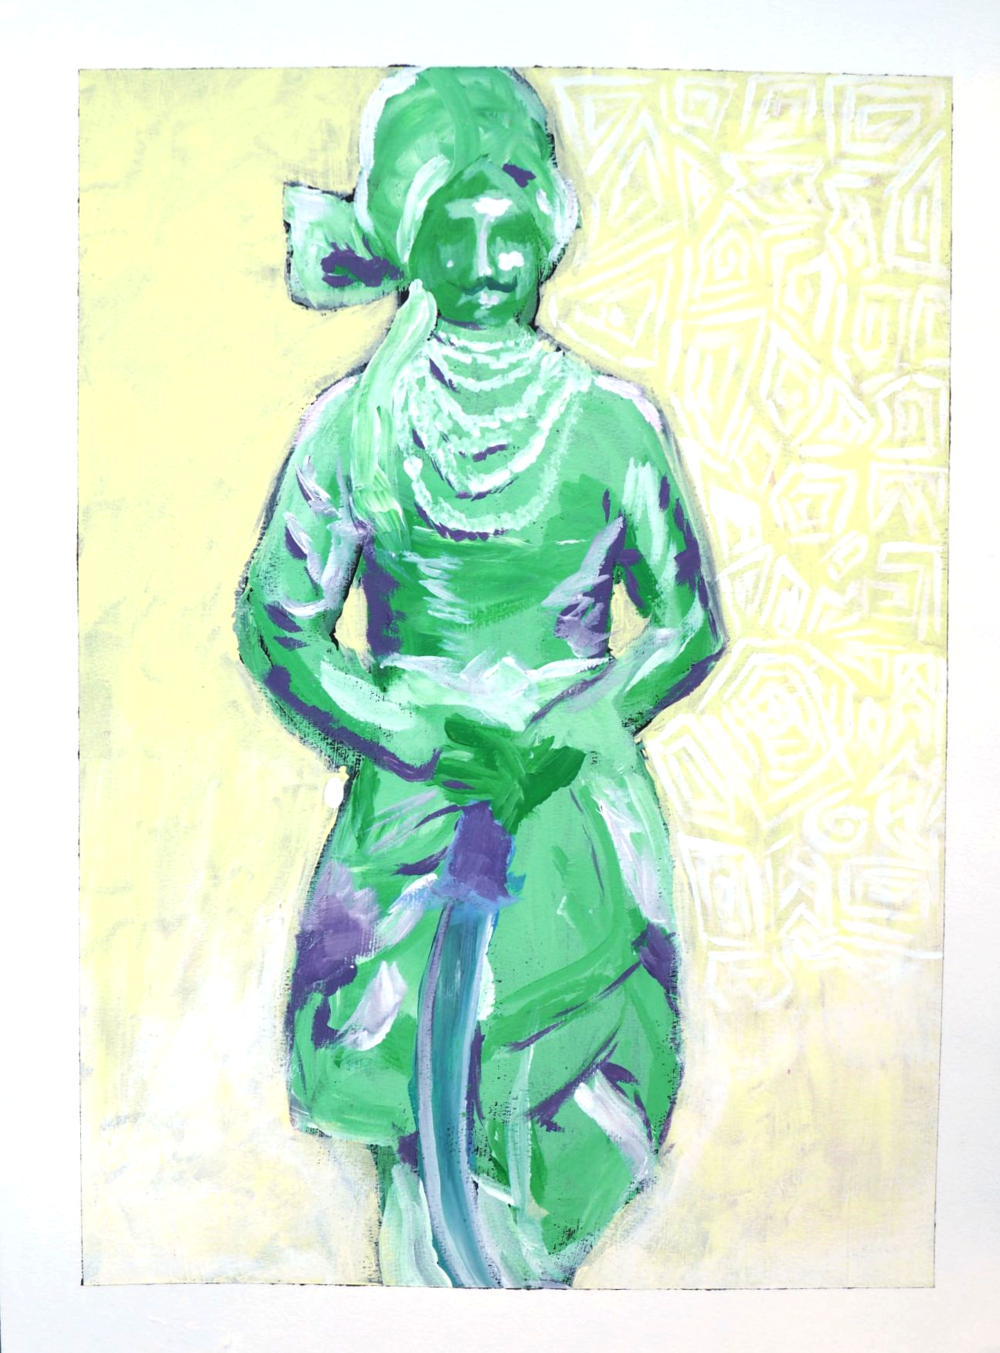 Green Maharaja,  24x18, acrylic on paper, $150